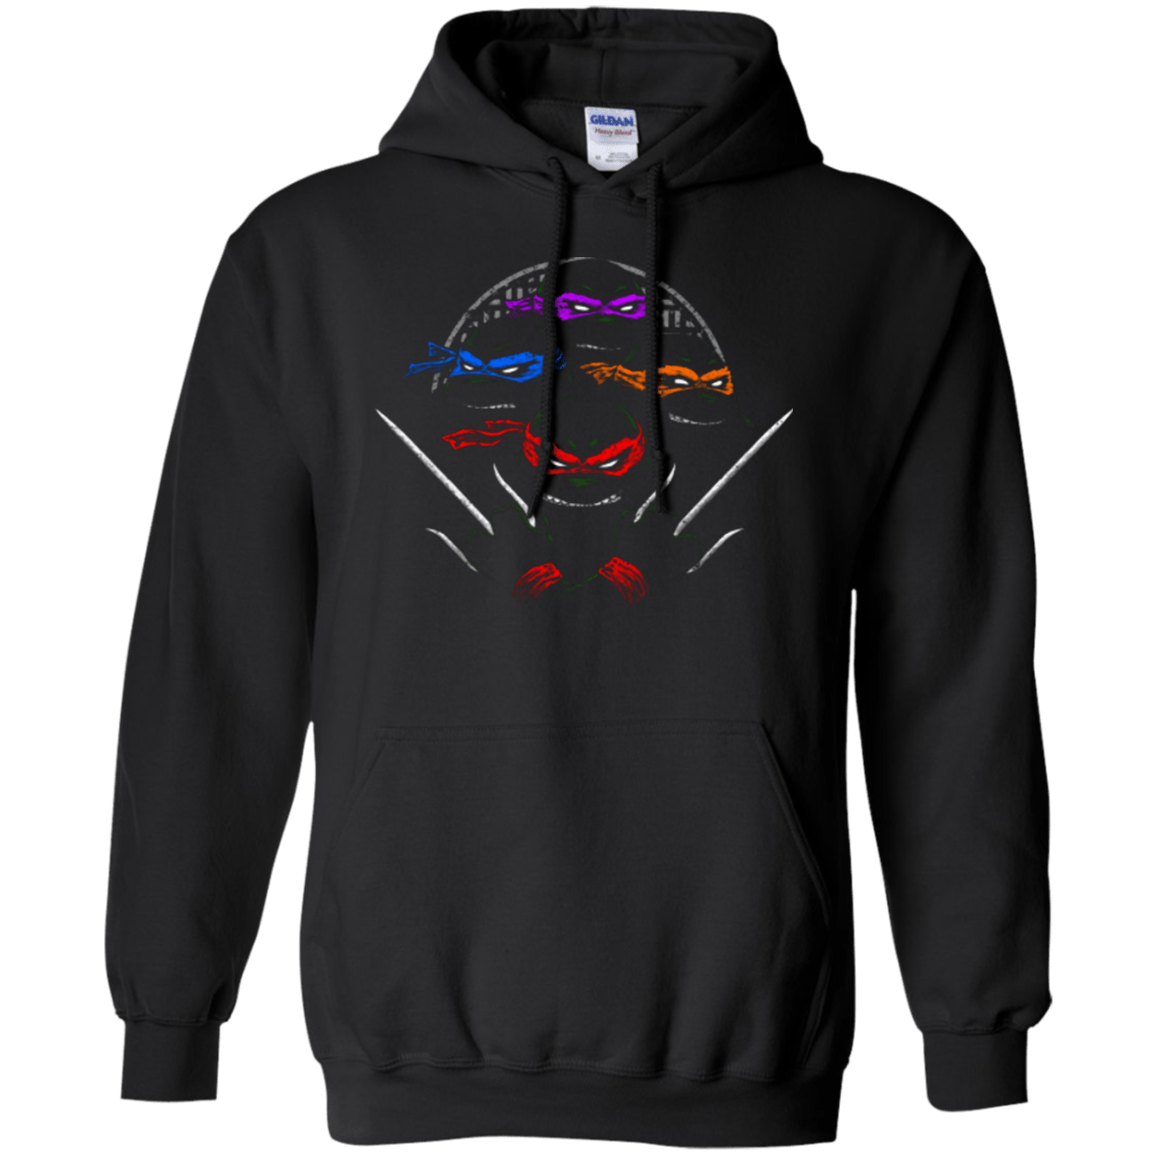 Sweatshirts Black / Small Mutant Ninja Brothers Pullover Hoodie